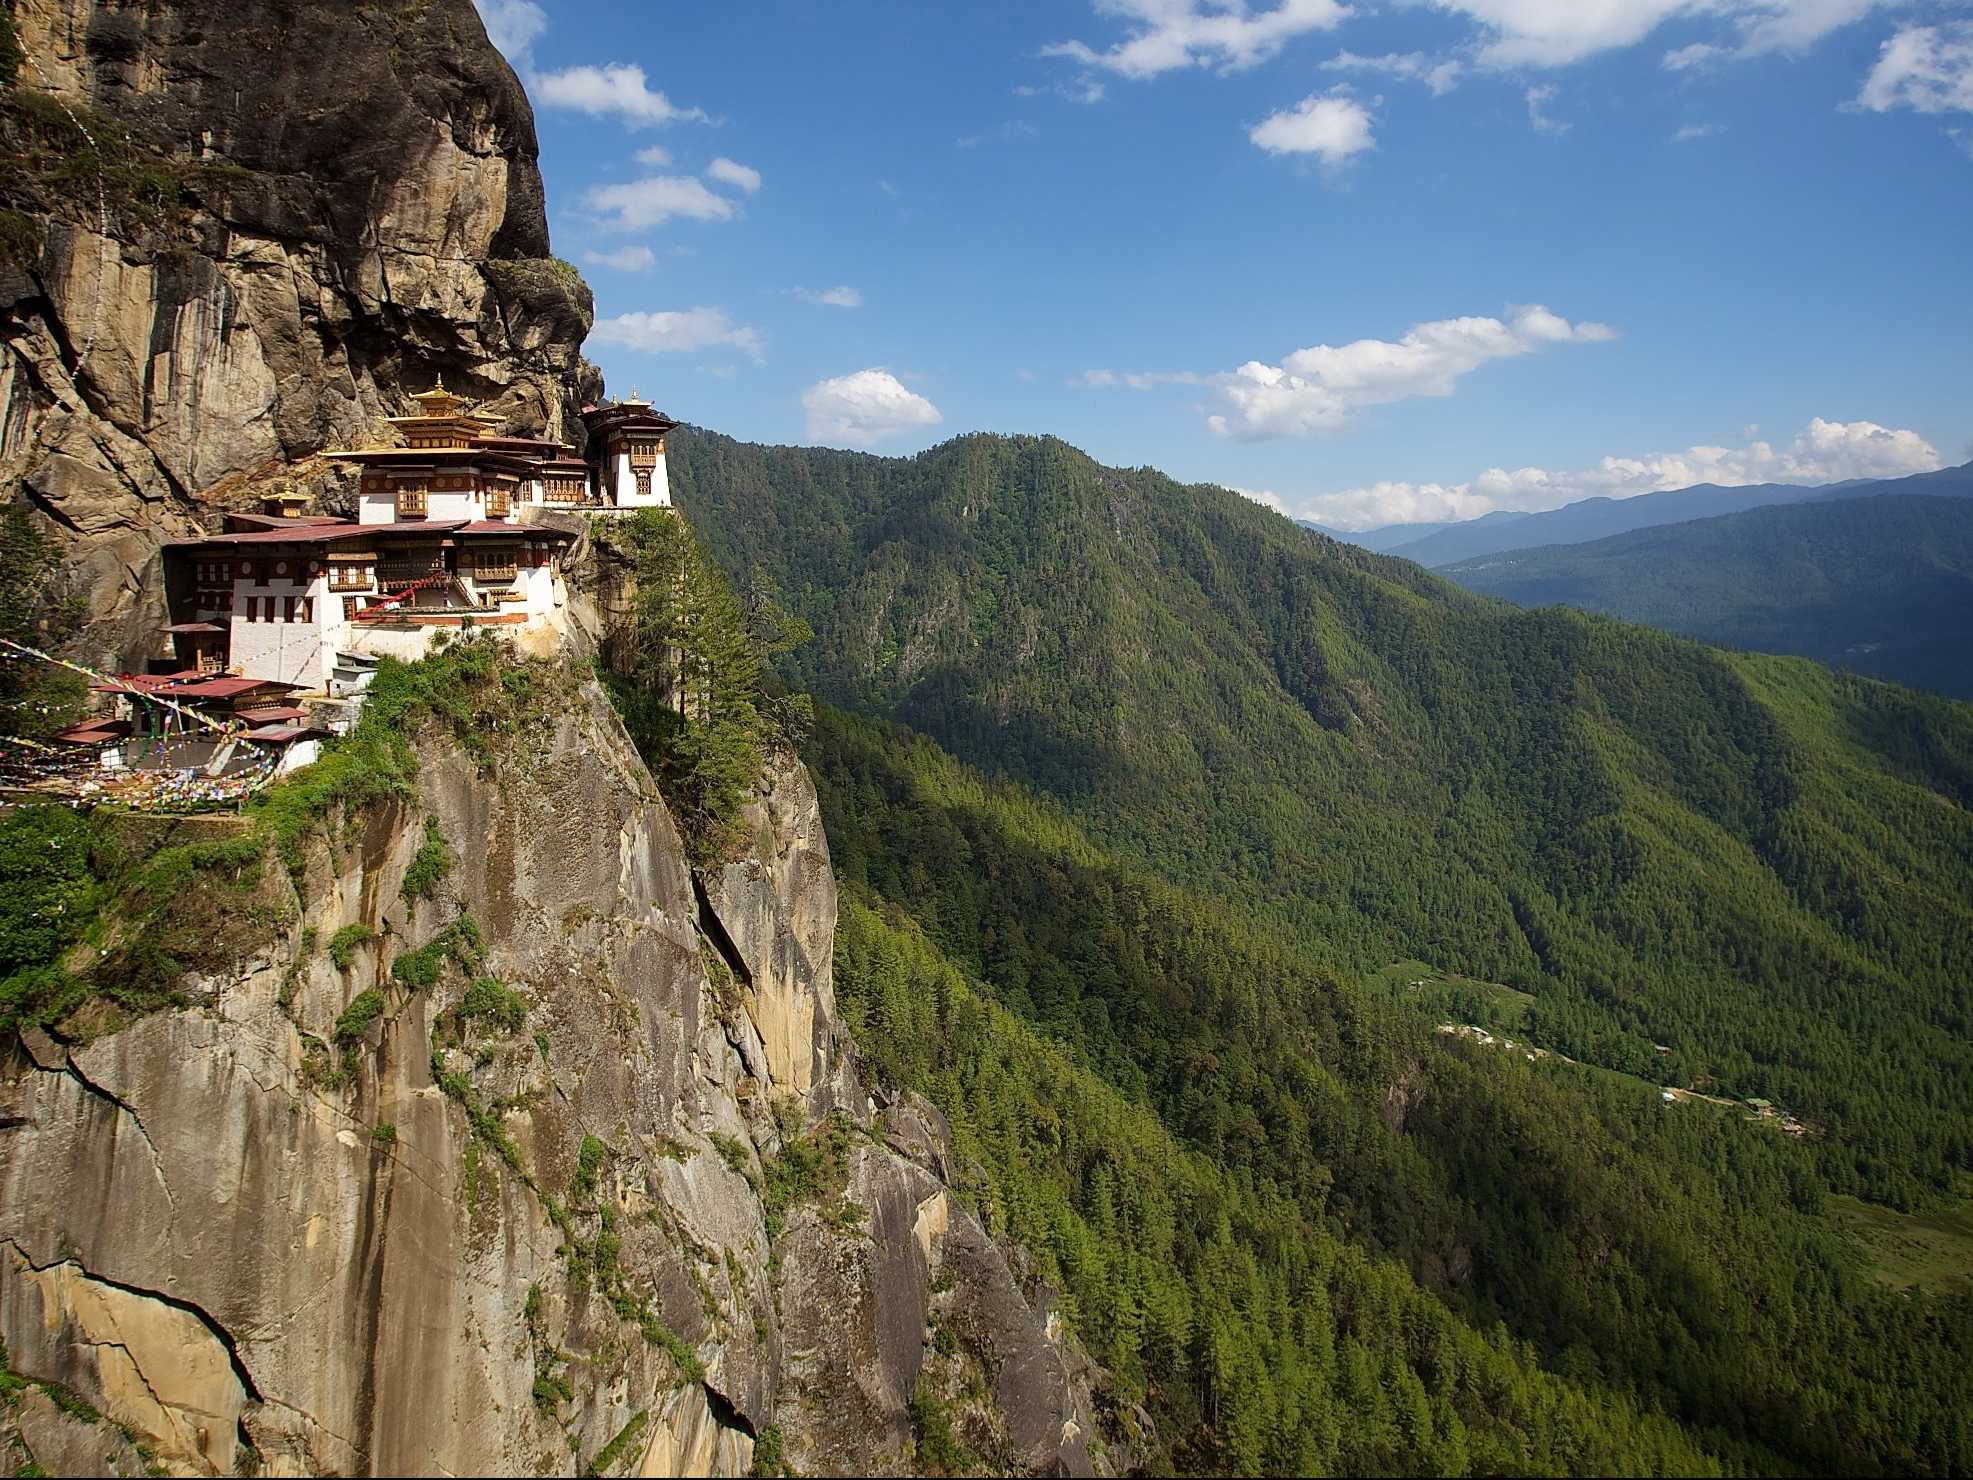 Tiger's Nest Monastery in Bhutan is perched 10,000 feet above sea level.